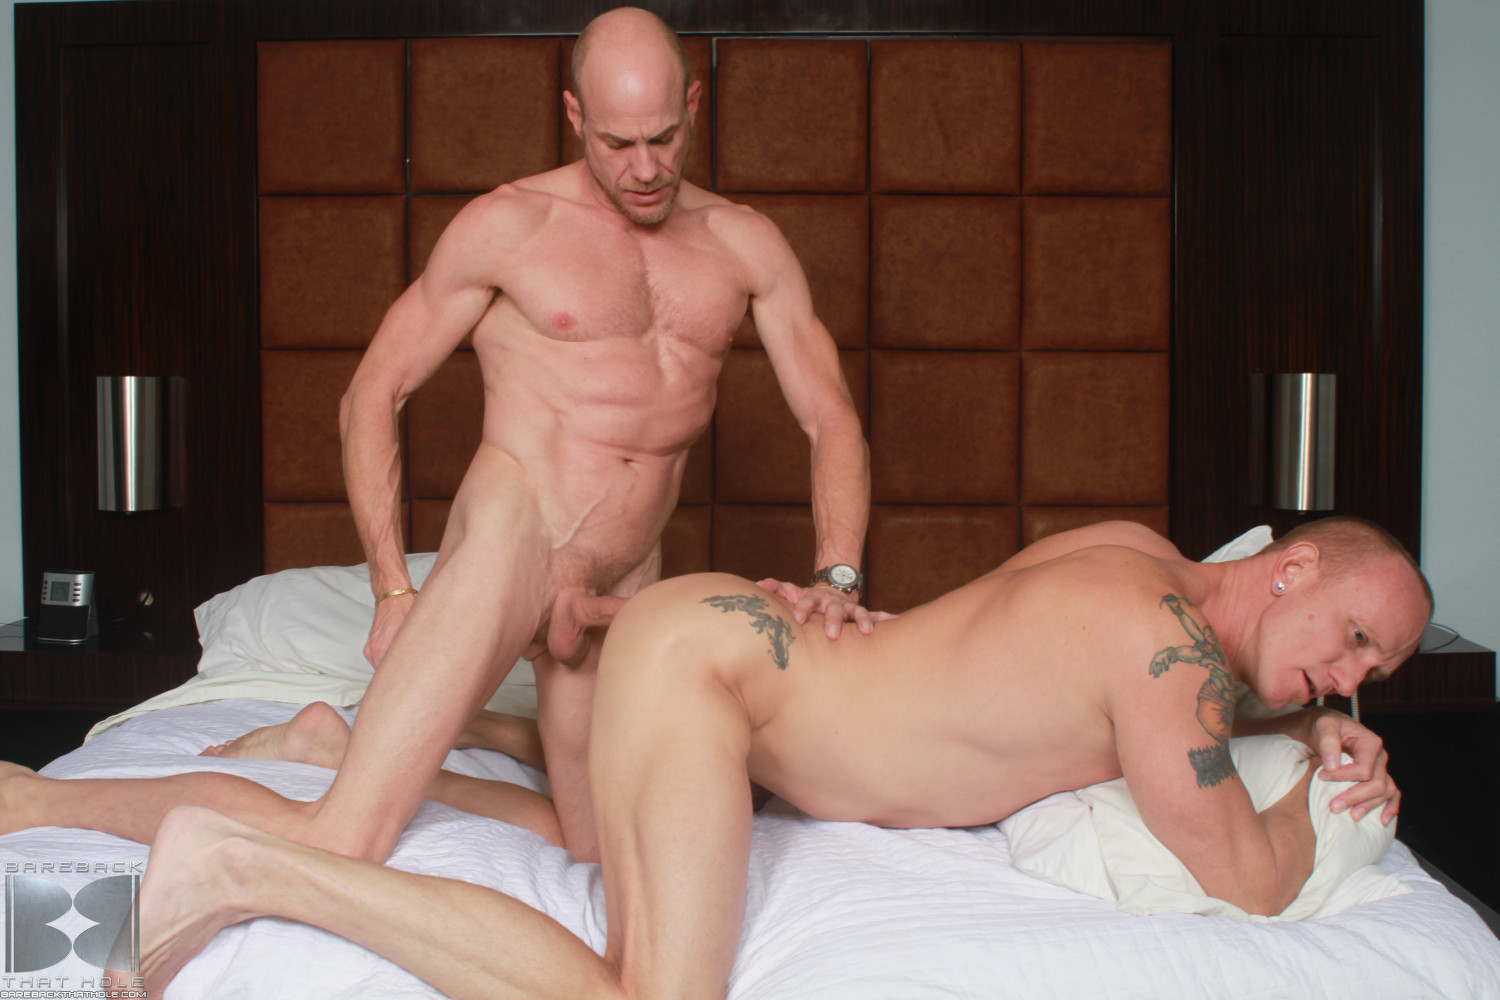 image Muscle daddy anal sex and facial